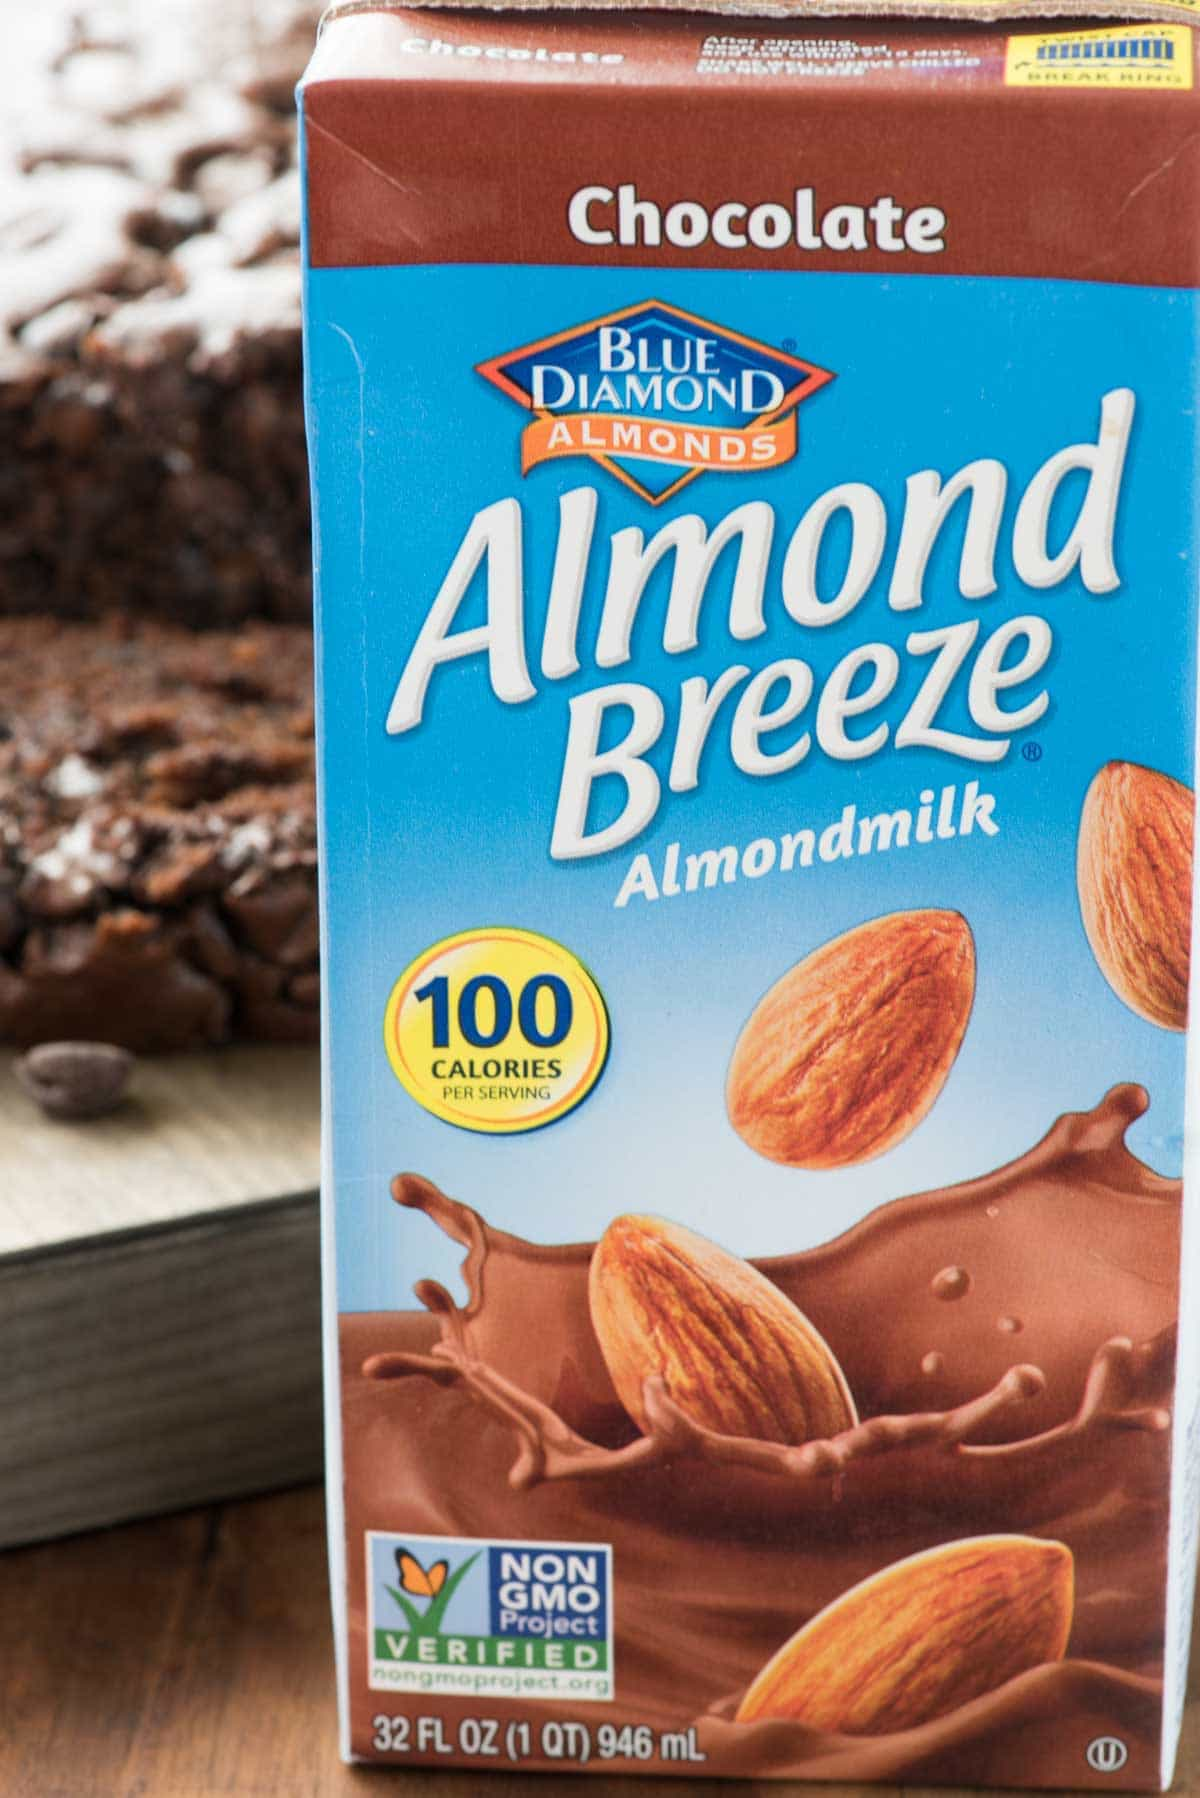 Carton of Chocolate Almond Breeze brand almondmilk